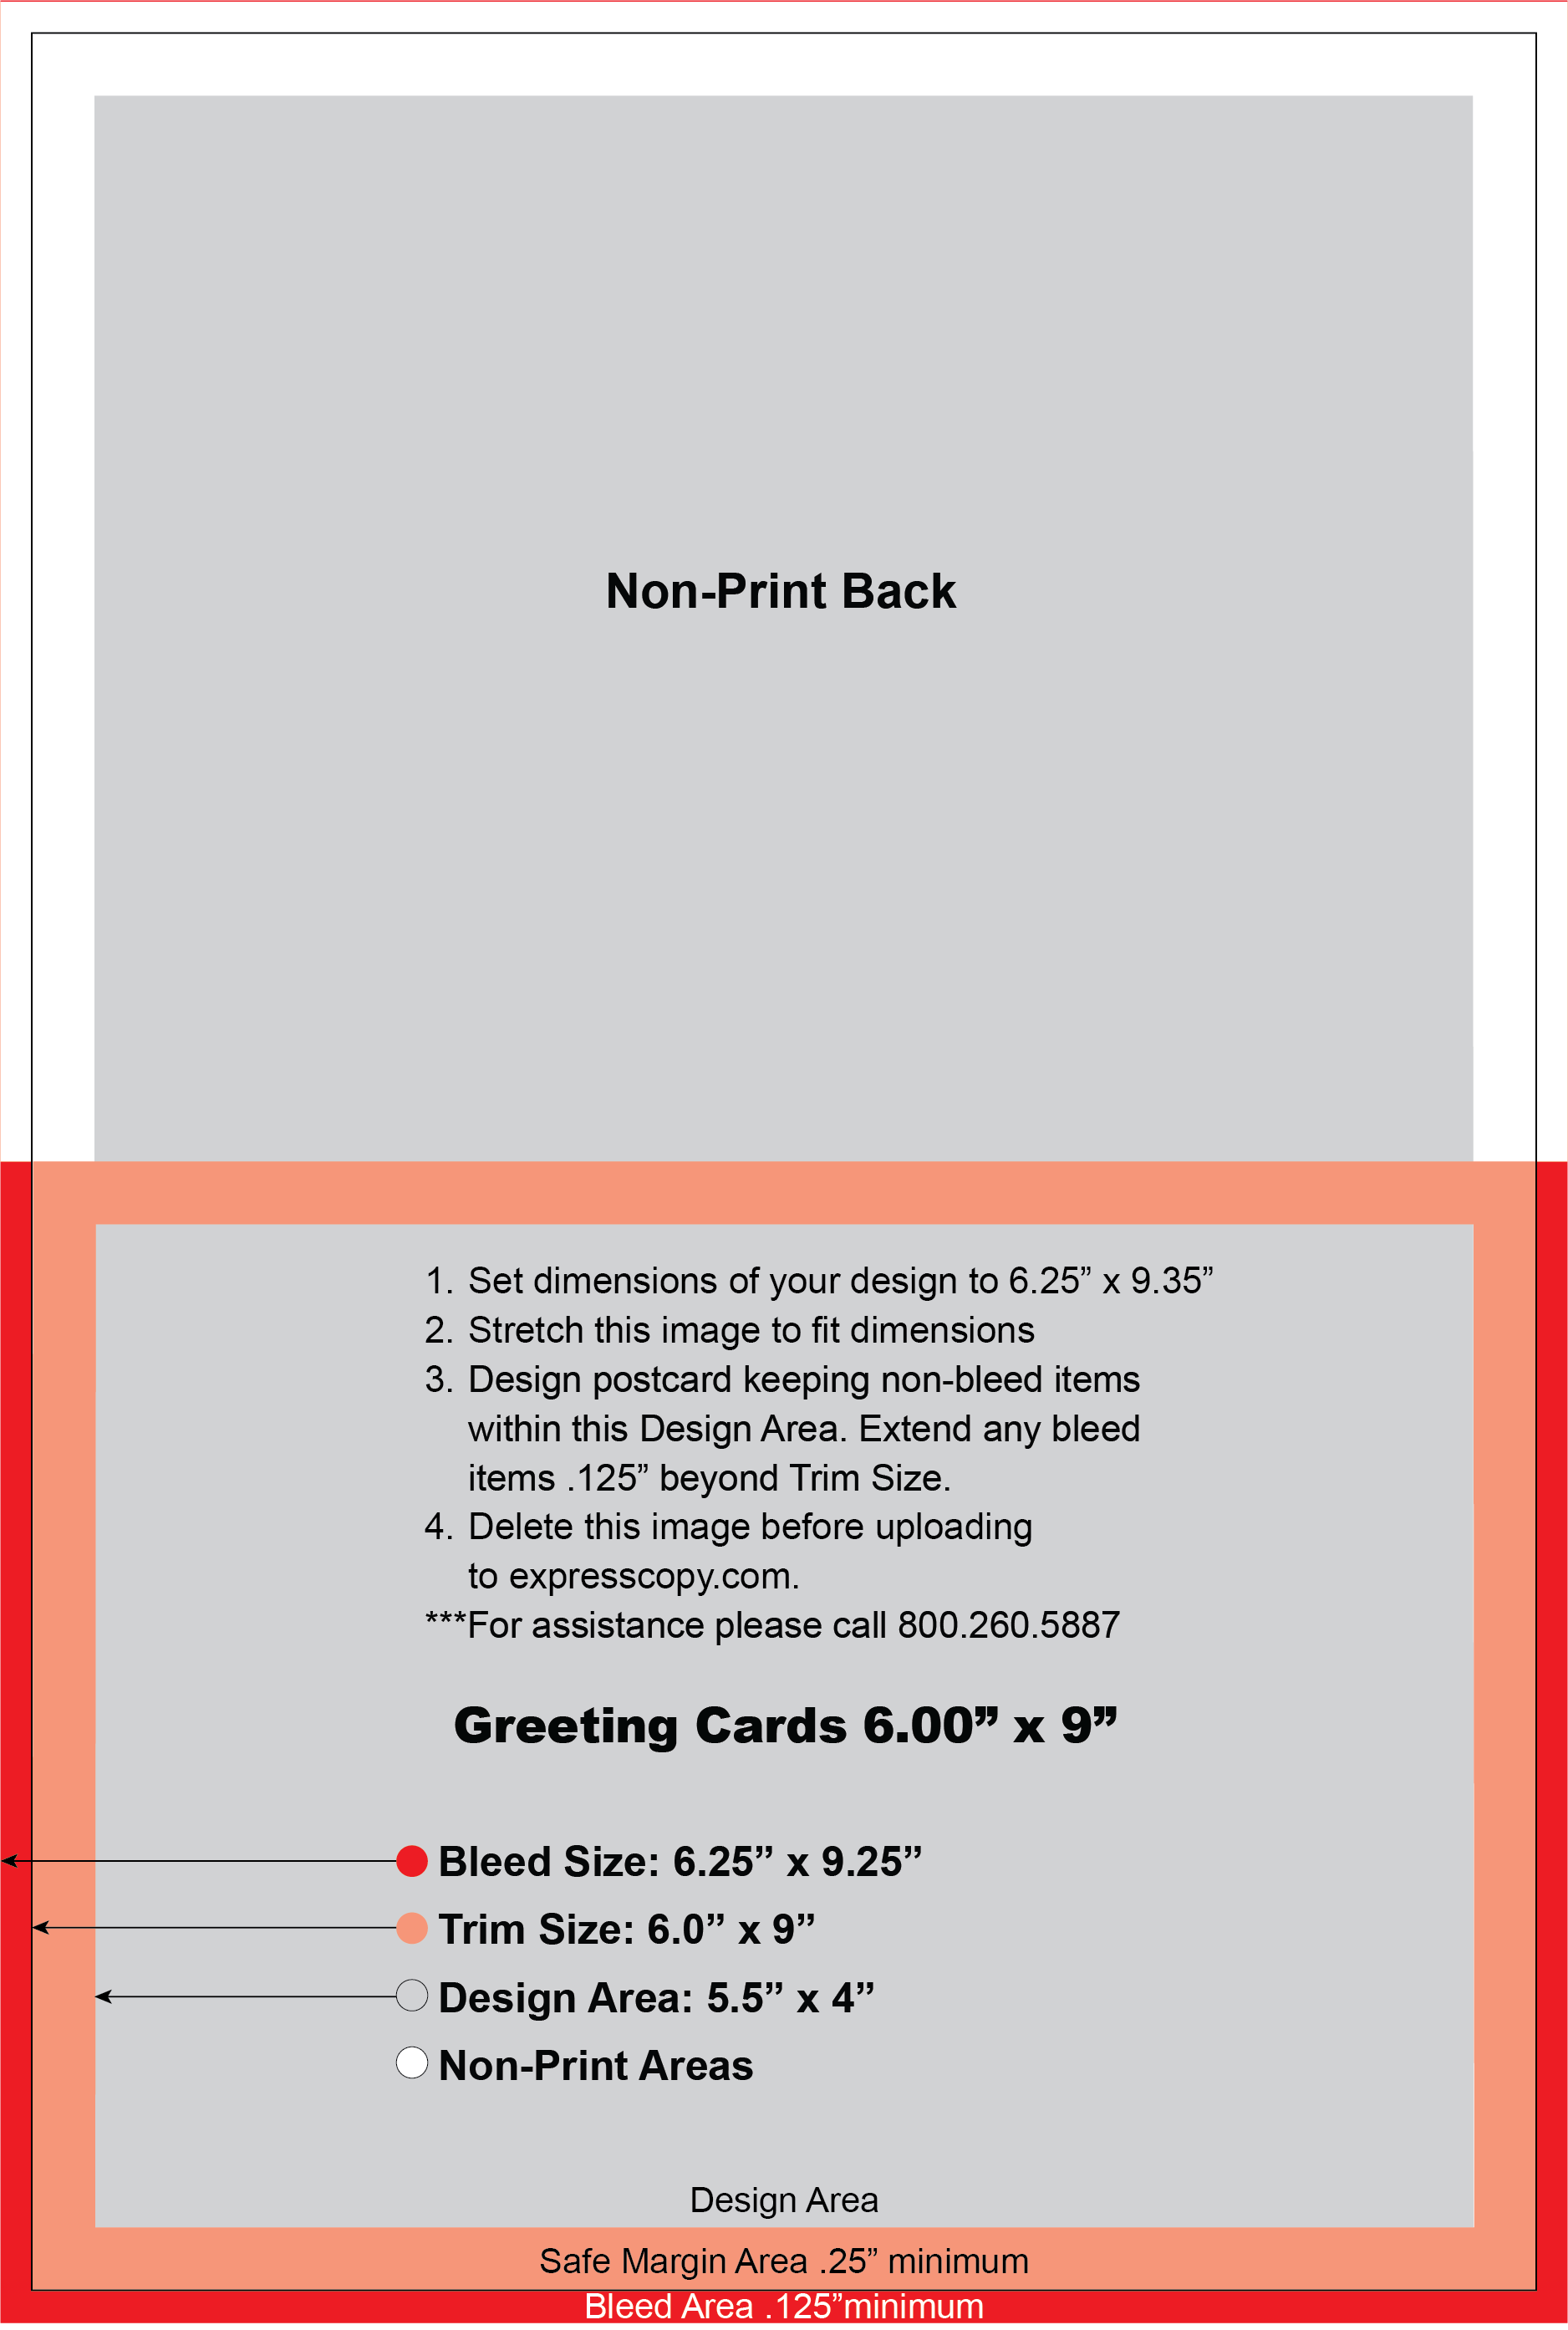 Greeting Card Print Specifications | expresscopy.com